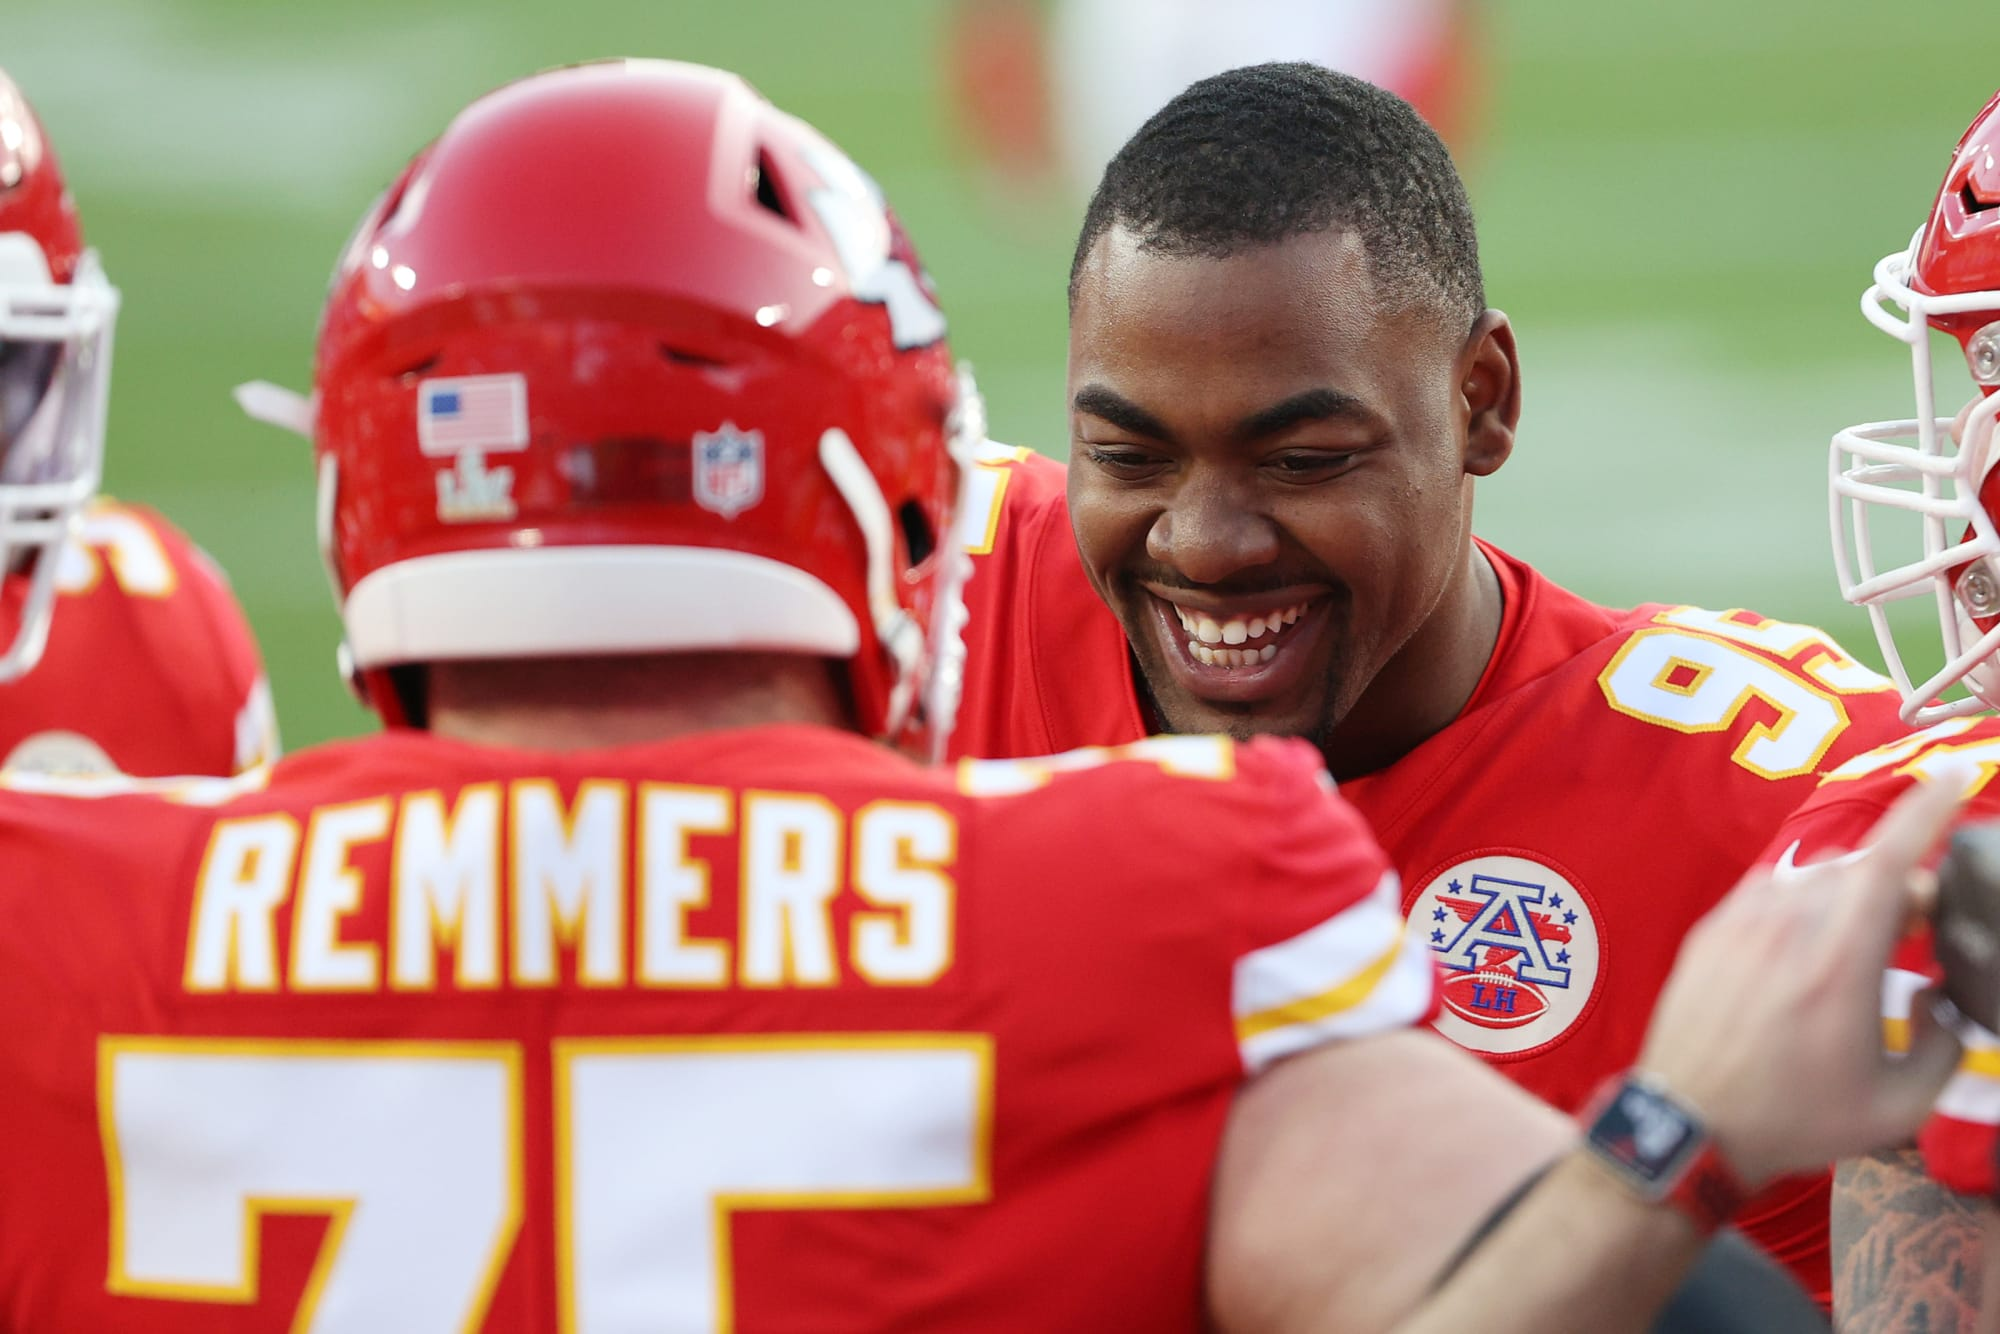 Chris Jones is looking like an absolute monster at Chiefs camp (Video)